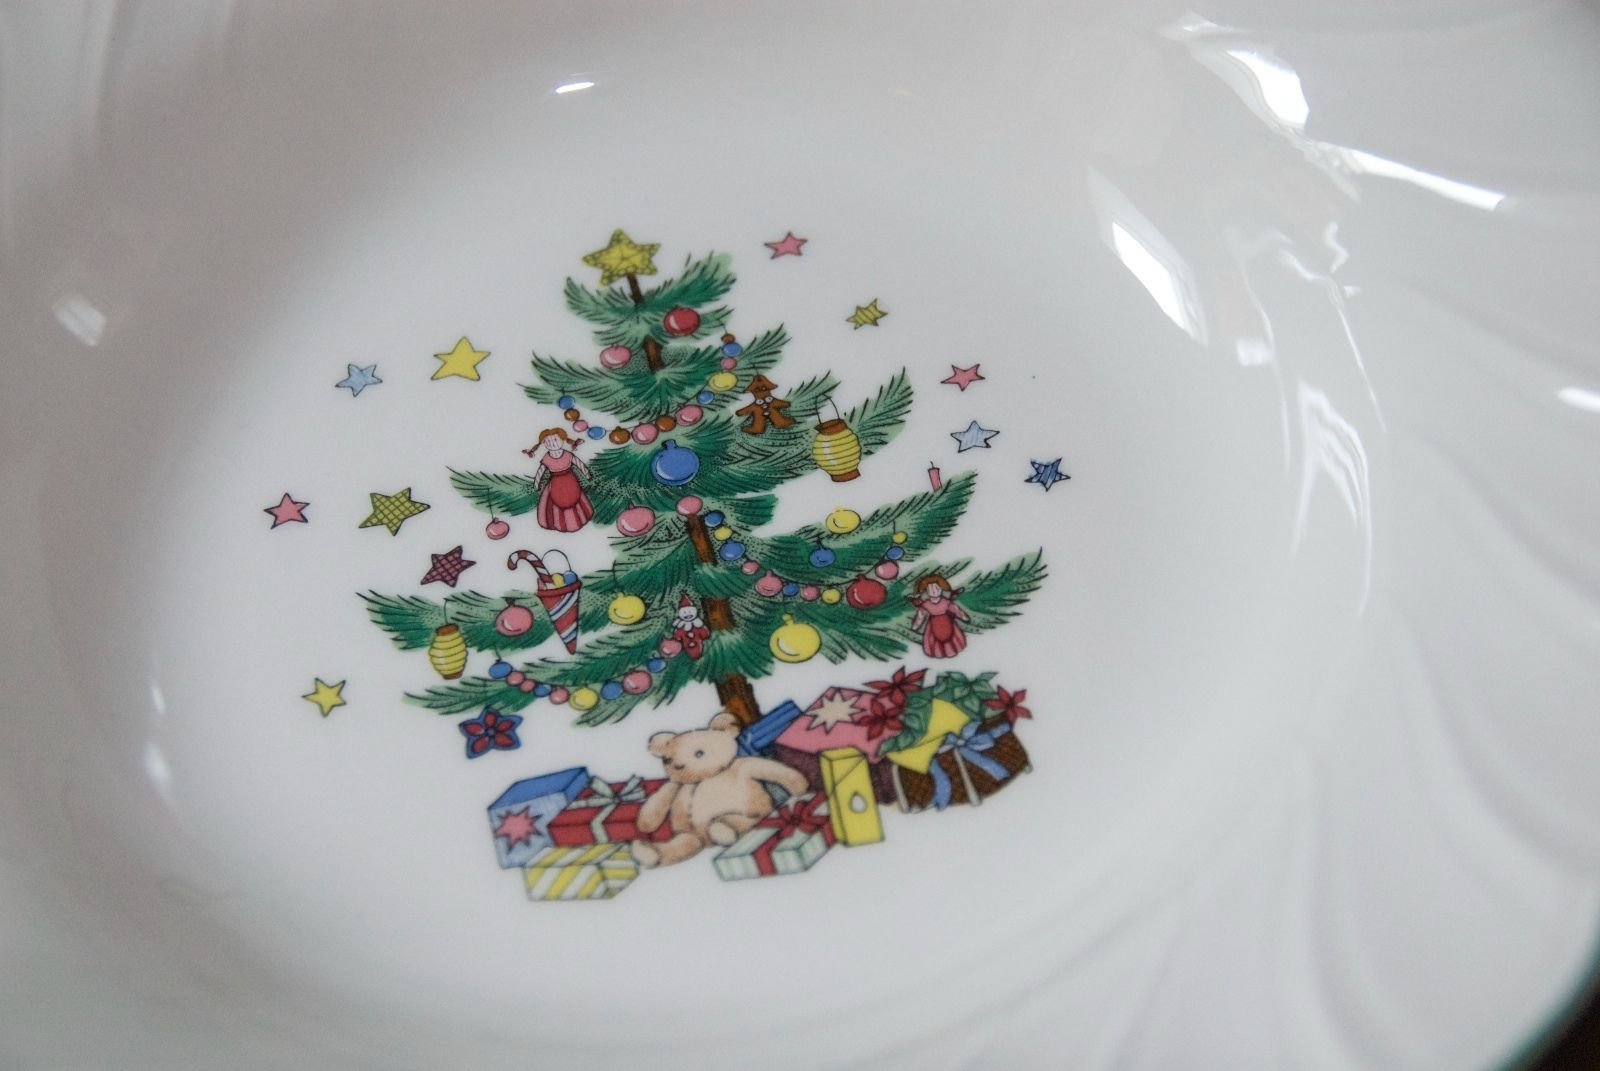 NIKKO PORCELAIN VEGETABLE SOUP BOWL HAPPY HOLIDAYS NO UTENSIL MARKS JAPAN 9.25""